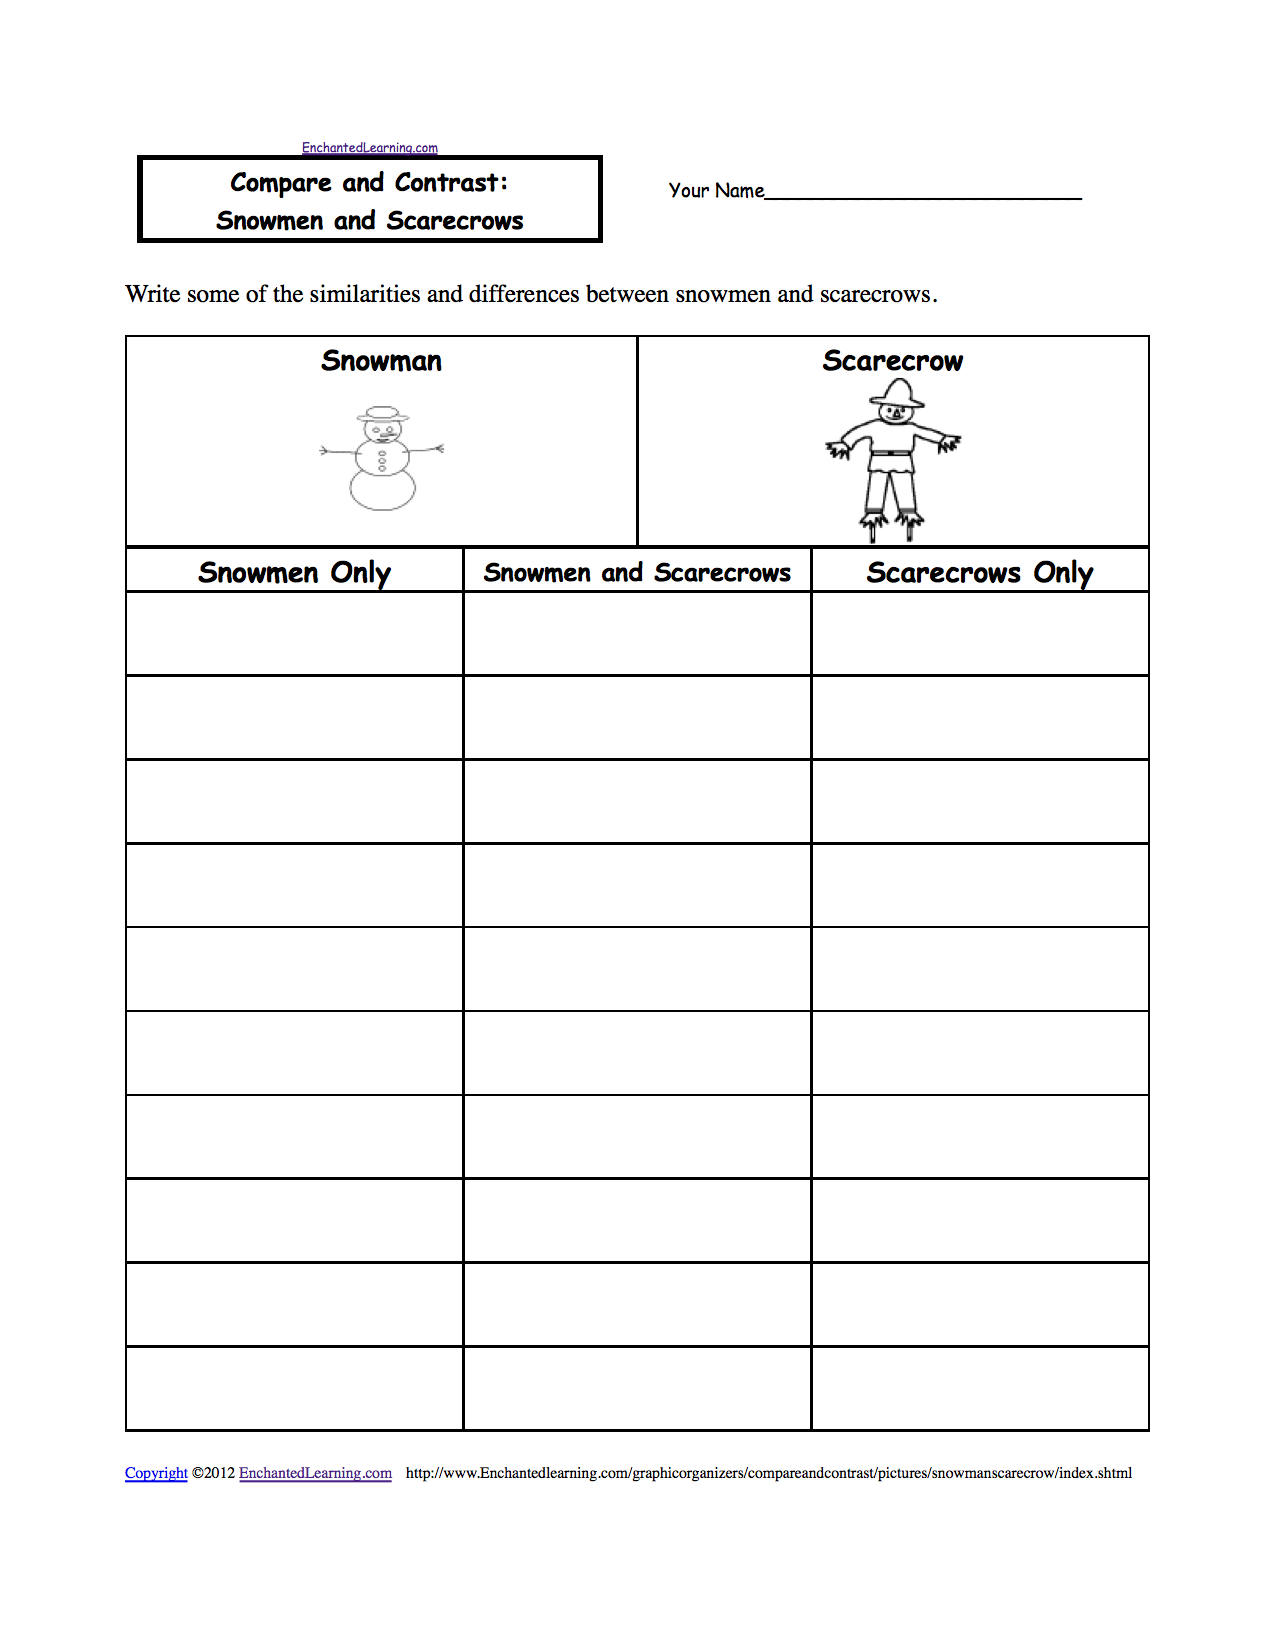 Worksheet Compare And Contrast Worksheets 4th Grade compare and contrast worksheets to print enchantedlearning com snowmen scarecrows